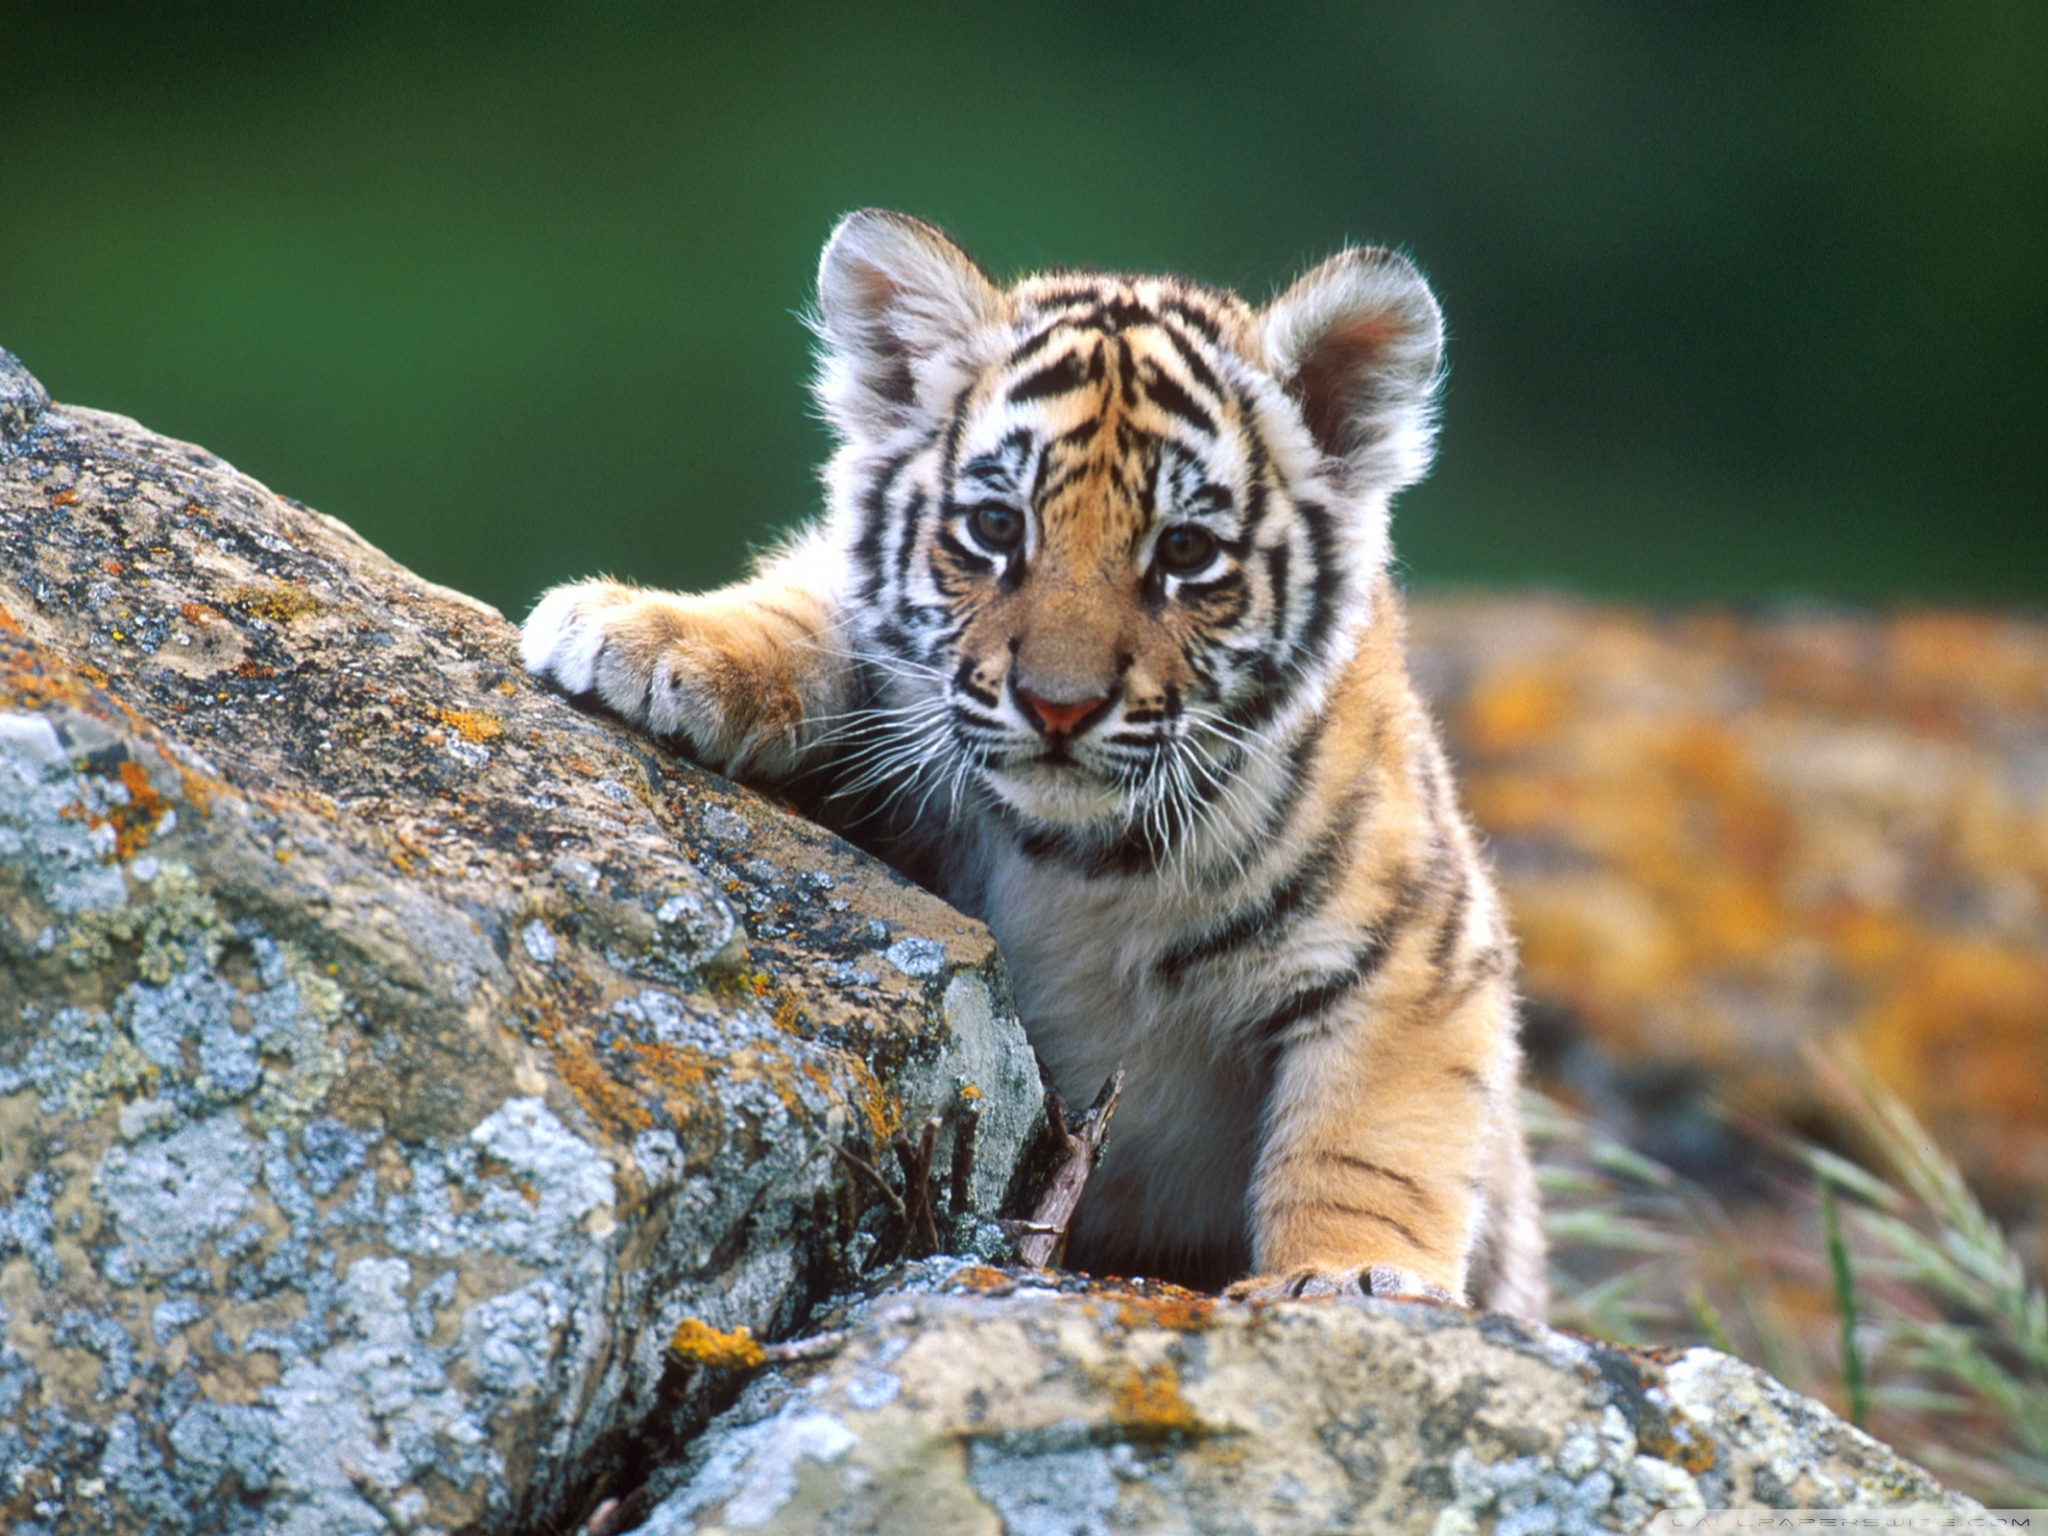 Cool Photos Of Animals , HD Wallpaper & Backgrounds